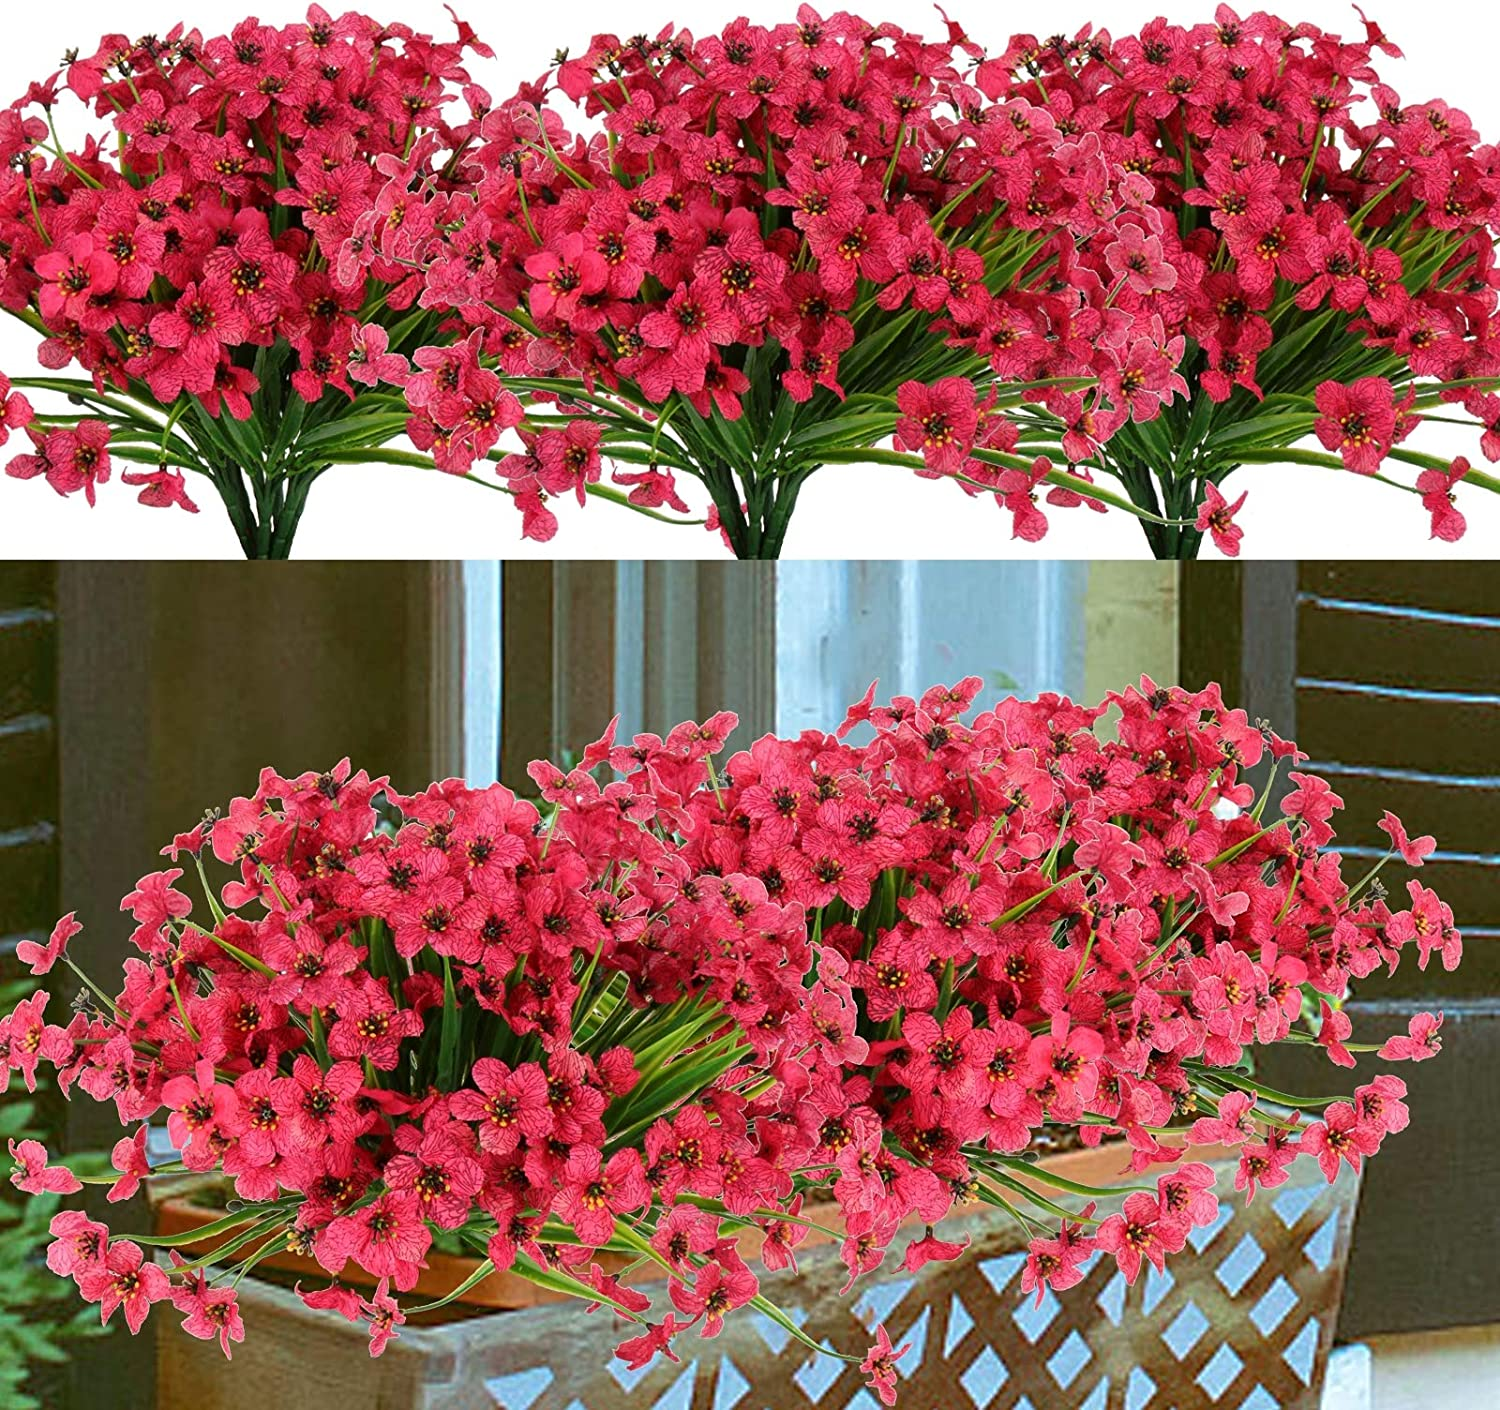 U/N 8 Bundles Artificial Flowers Outdoor UV Resistant Fake Flowers No Fade Faux Plastic Greenery Plants for Hanging Planter Garden Porch Window Box Patio Home Decoration (Rose Red)